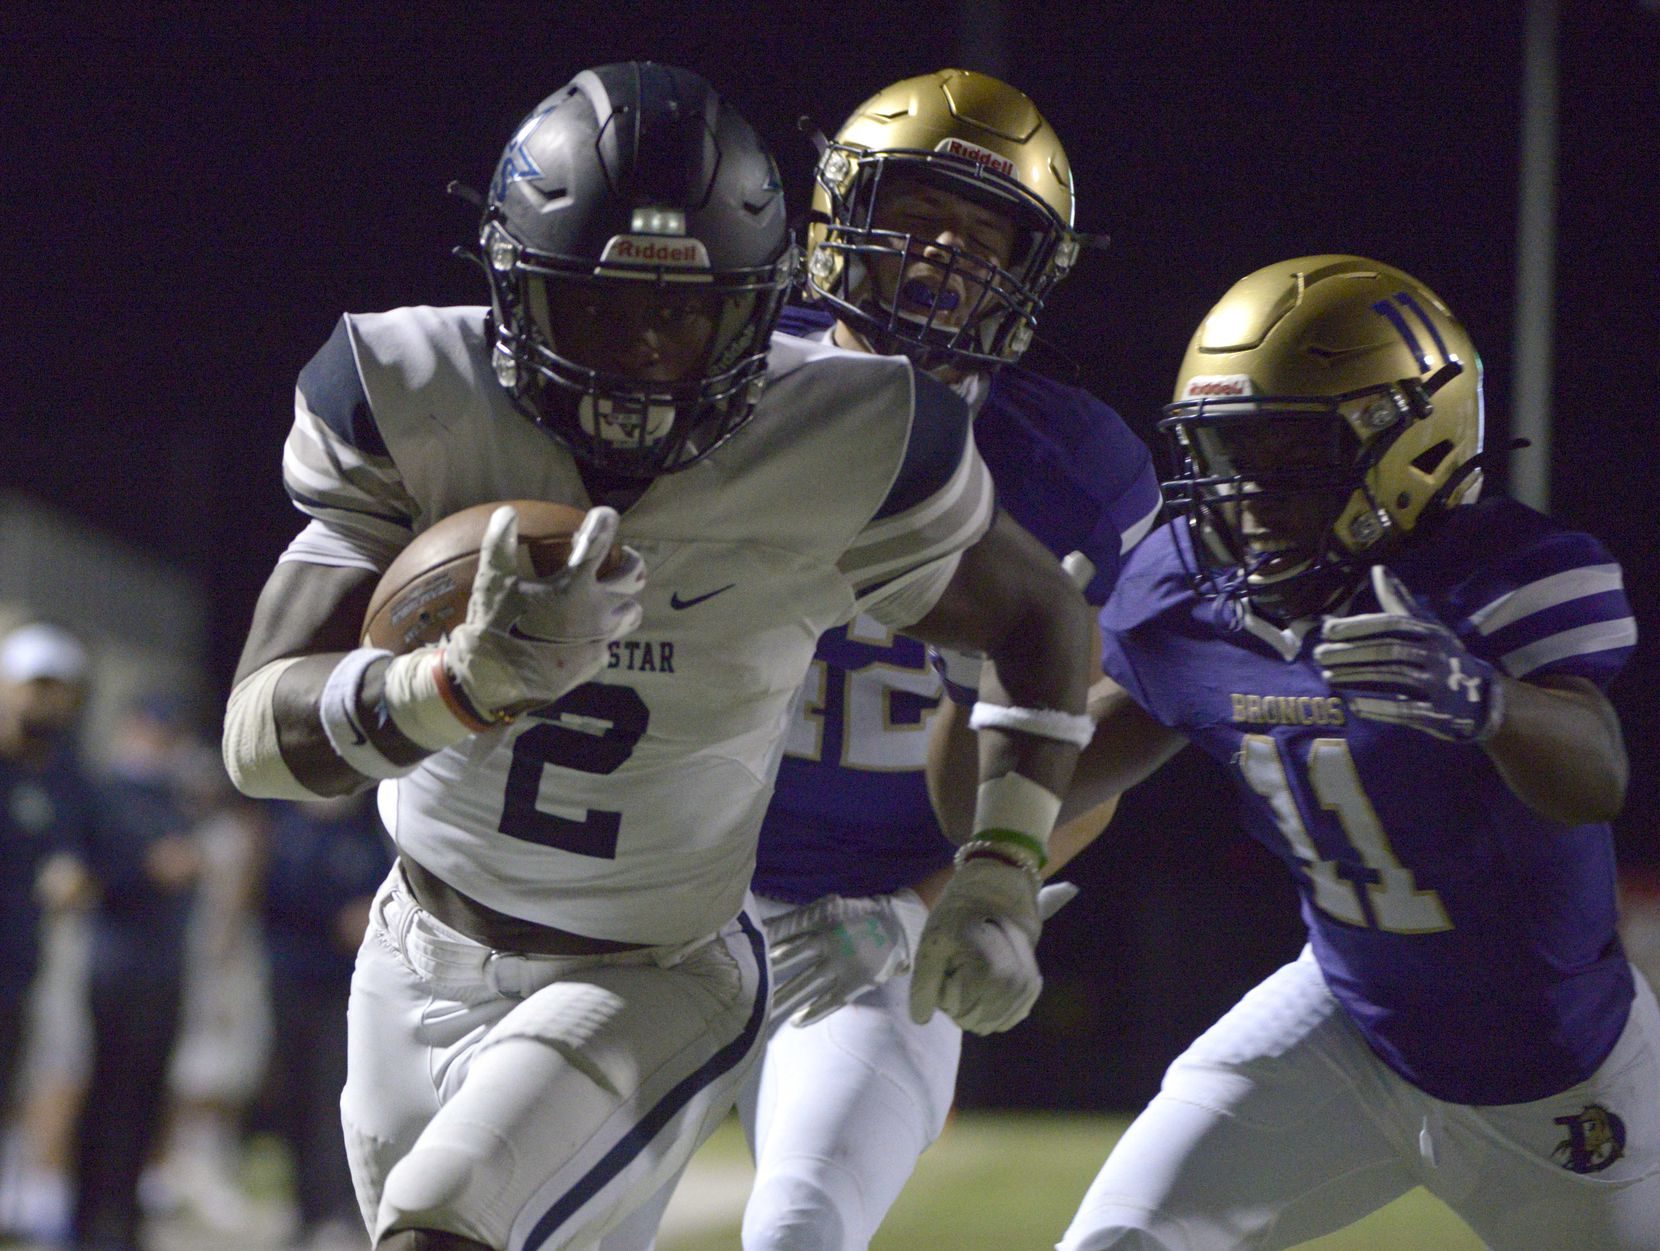 Lone Star's Ashton Jeanty (2) runs for a touchdown in front of Denton's Amir Fera (42) and Courtney Blackston (11) in the second quarter of a high school football game between Frisco Lone Star and Denton, Thursday, Nov. 5, 2020, in Denton, Texas.